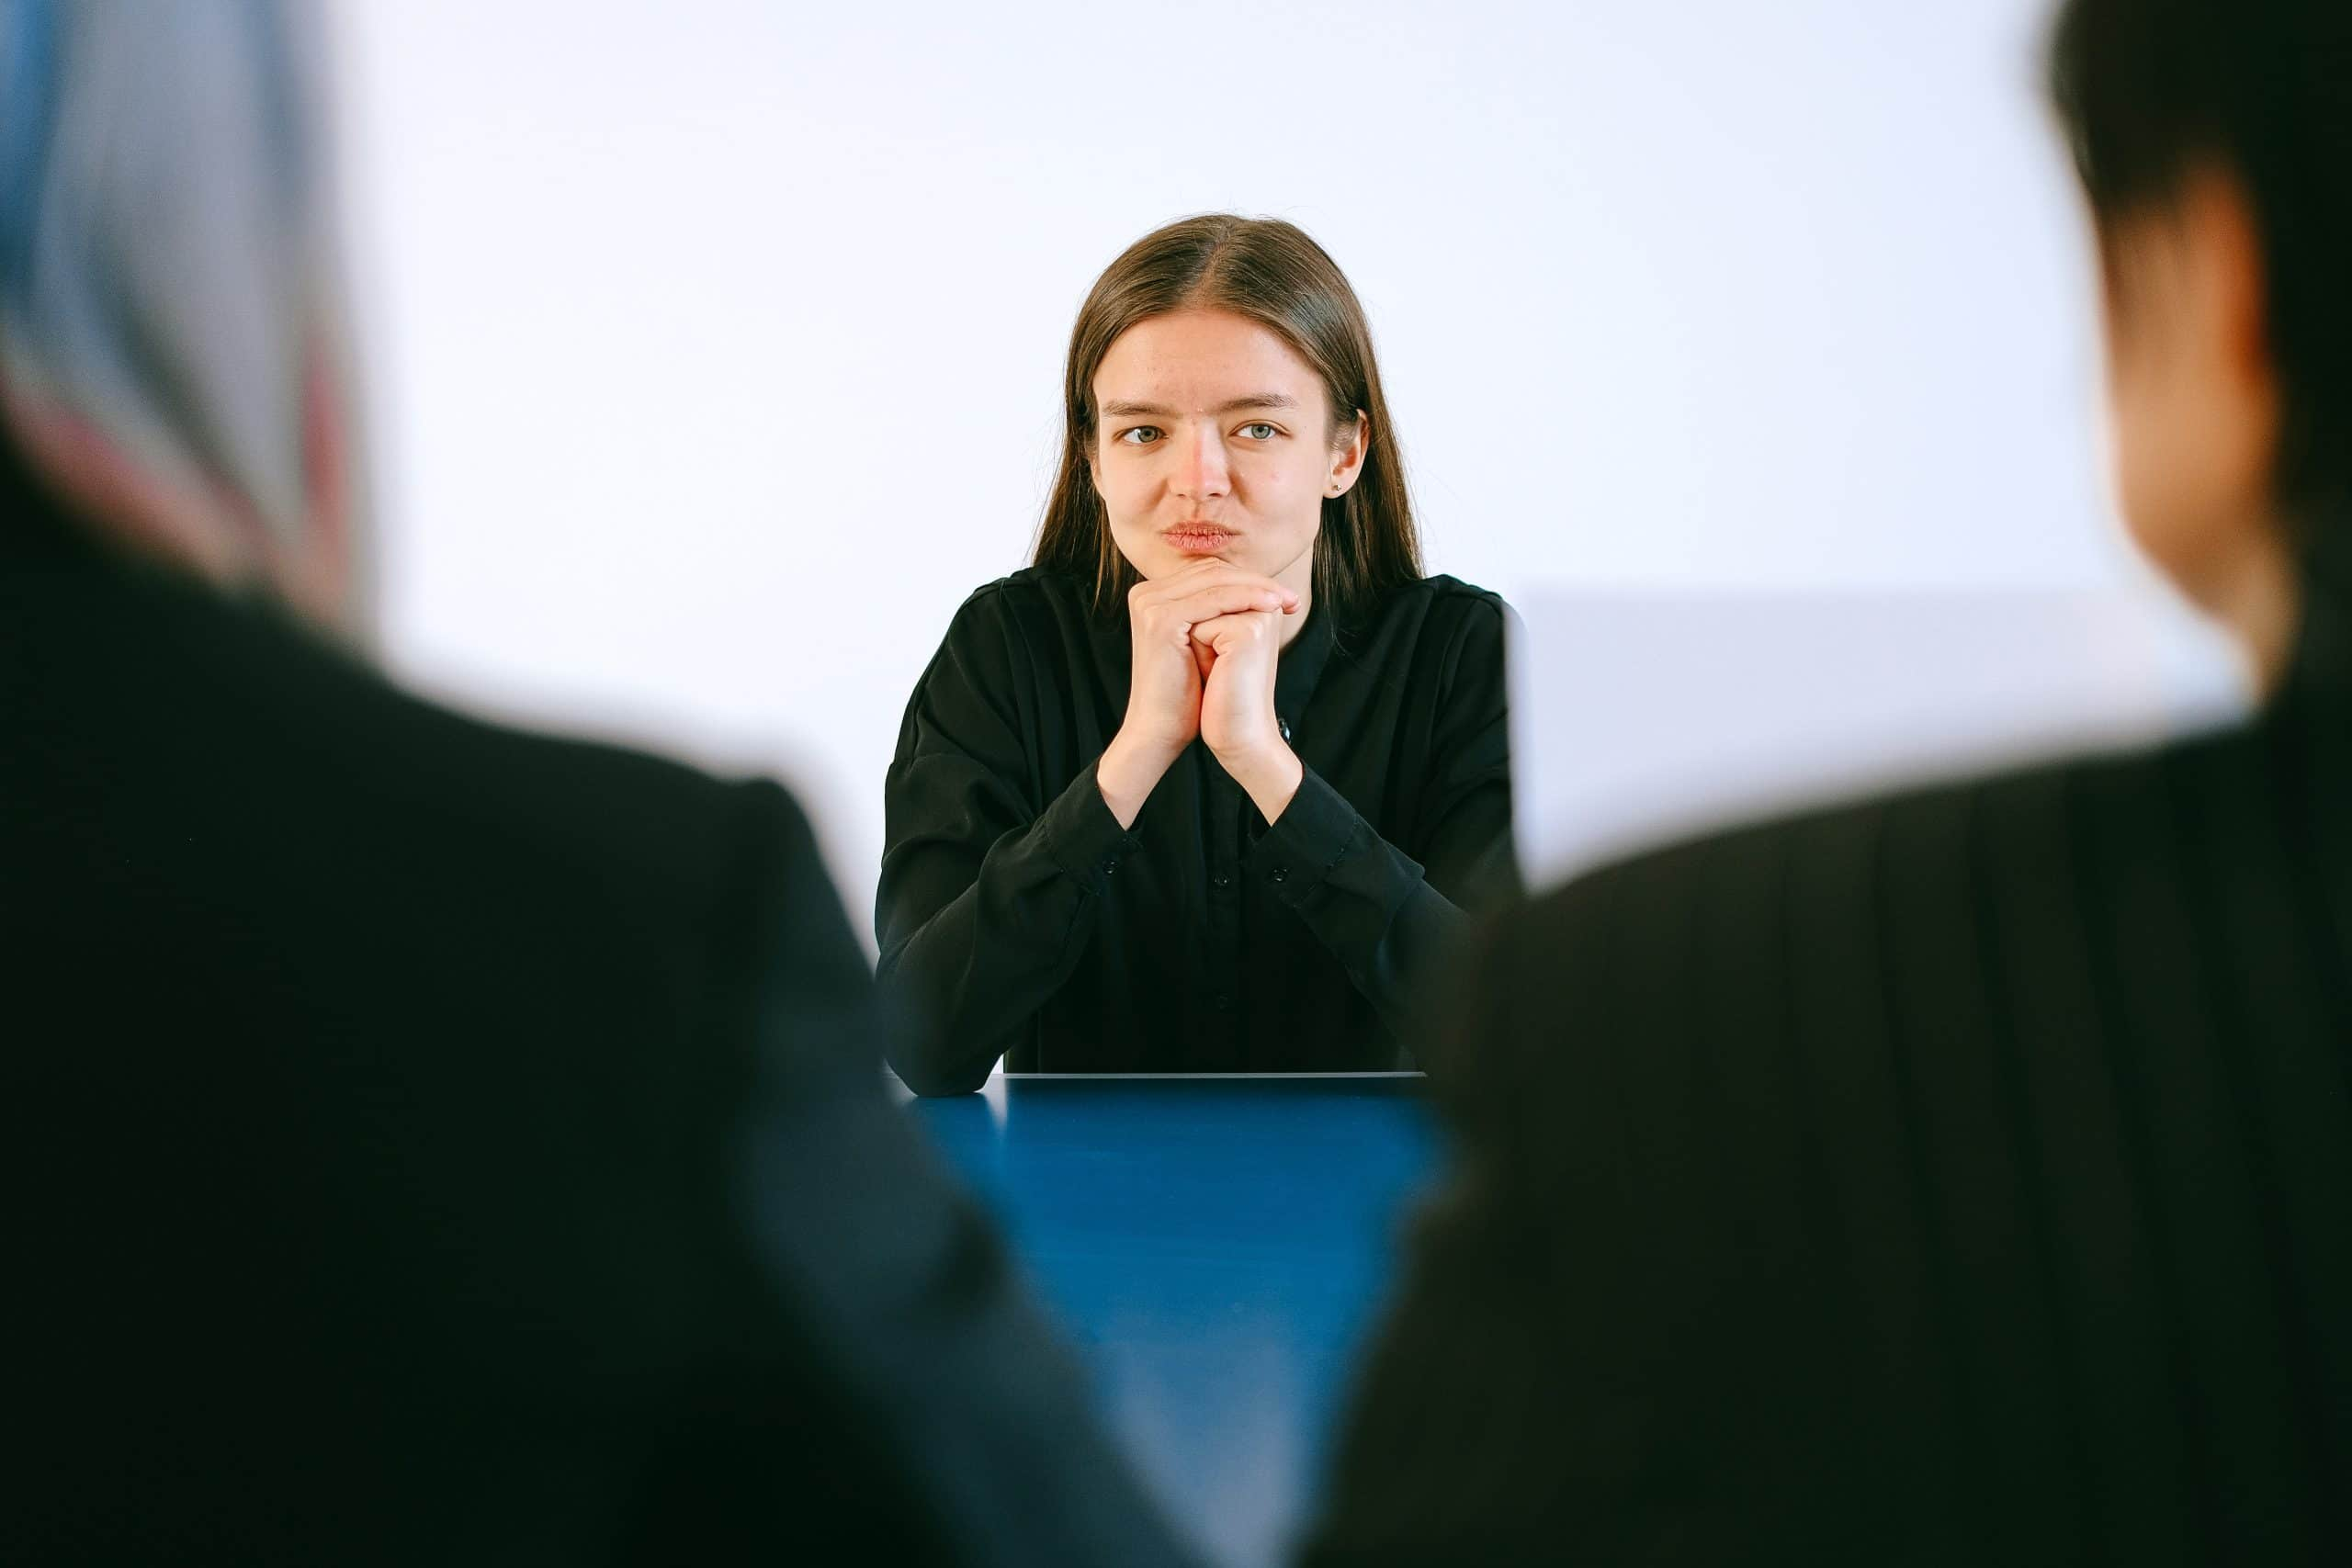 Interviewing for a role? Be mindful of red flags and trust your intuition